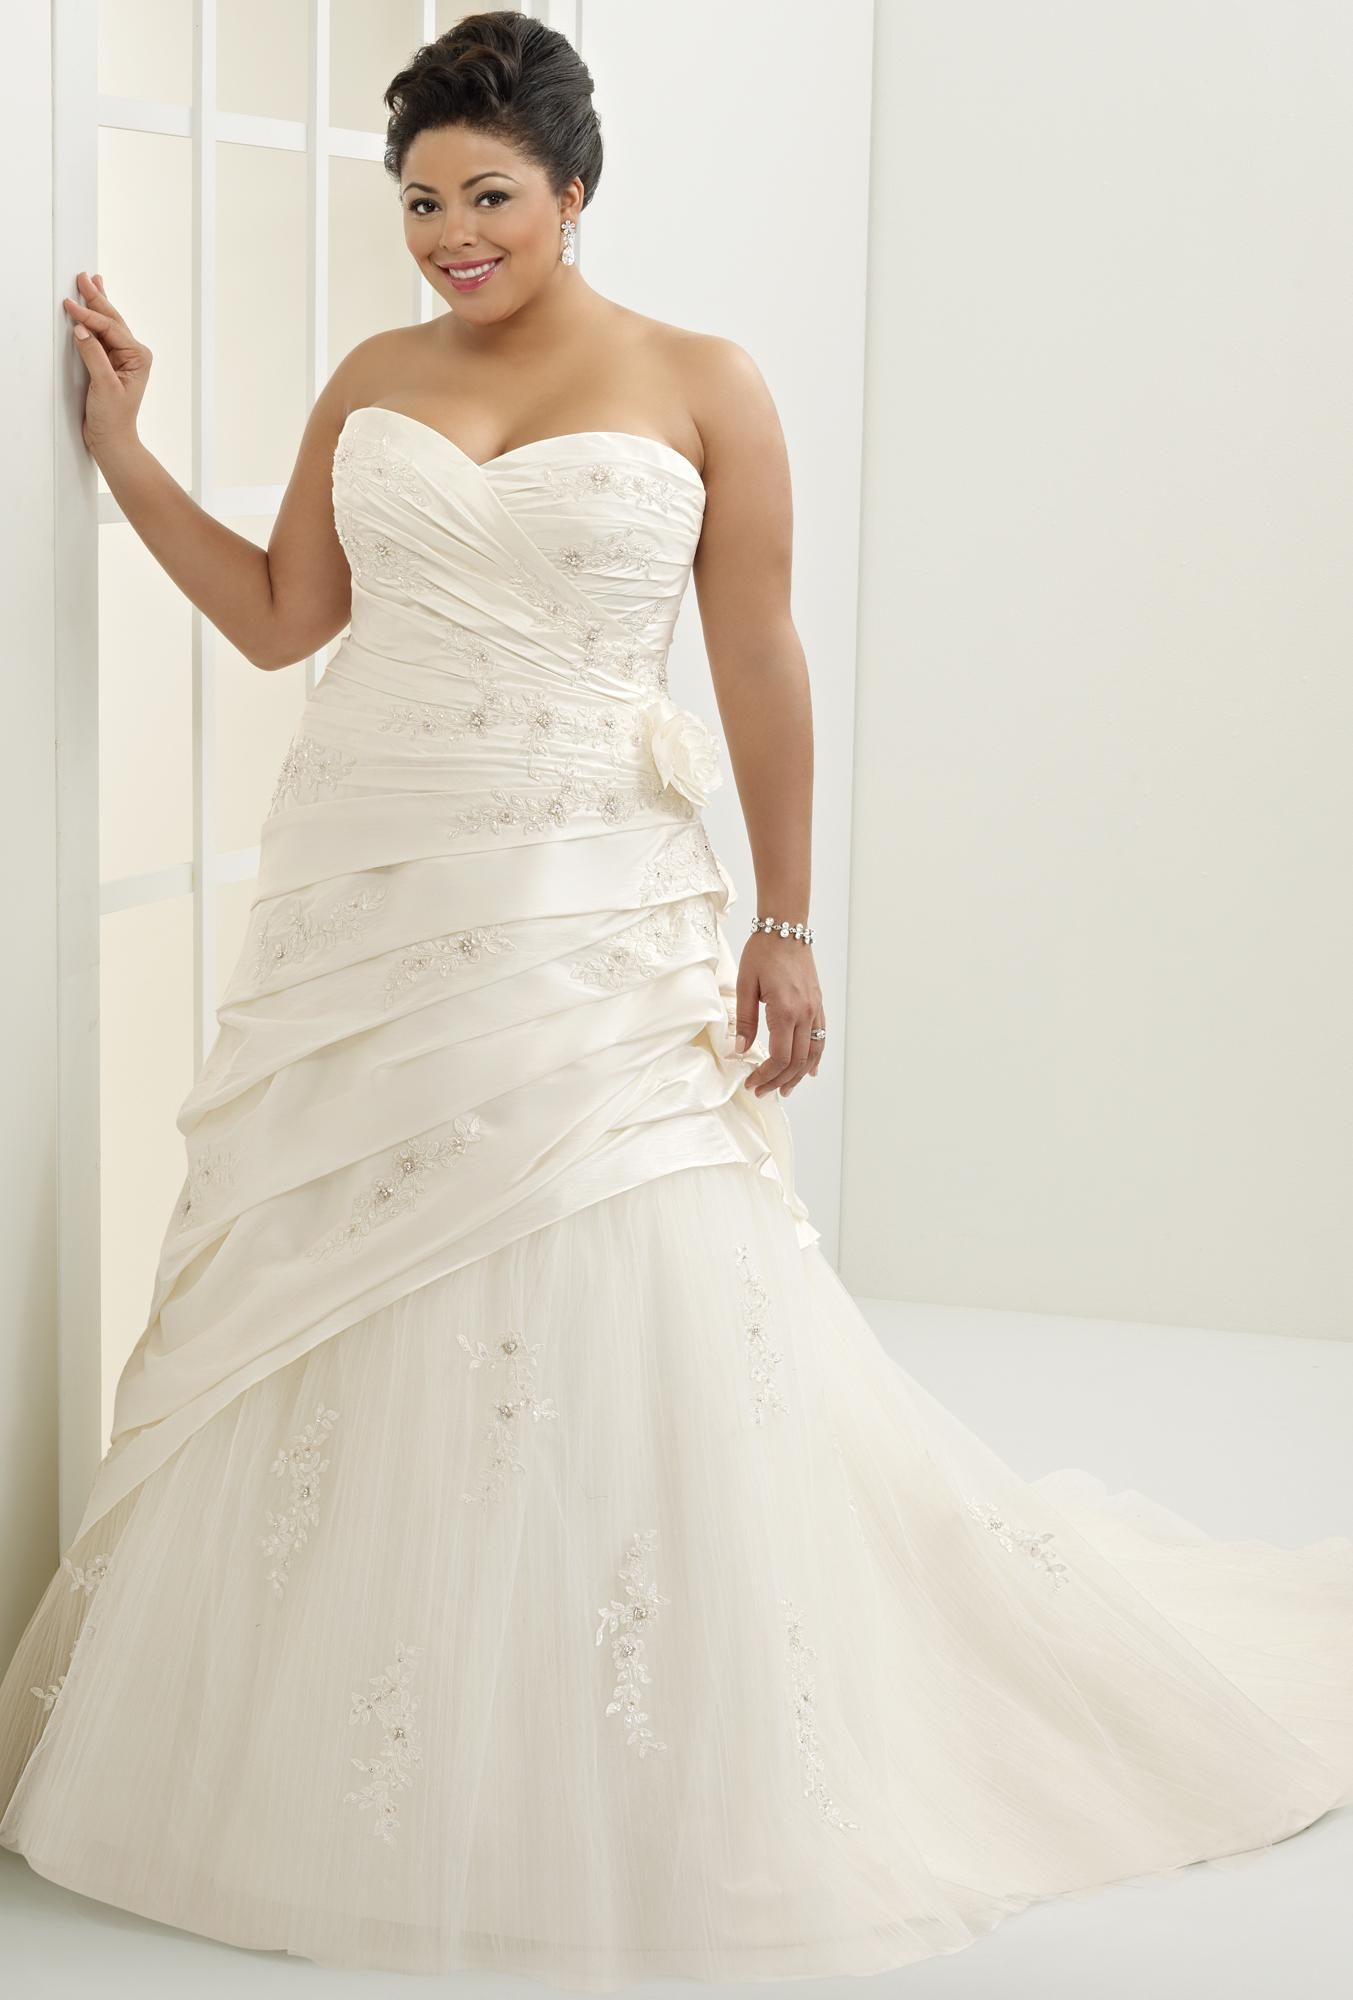 17 Best images about Wedding dresses plus on Pinterest | Plus size ...